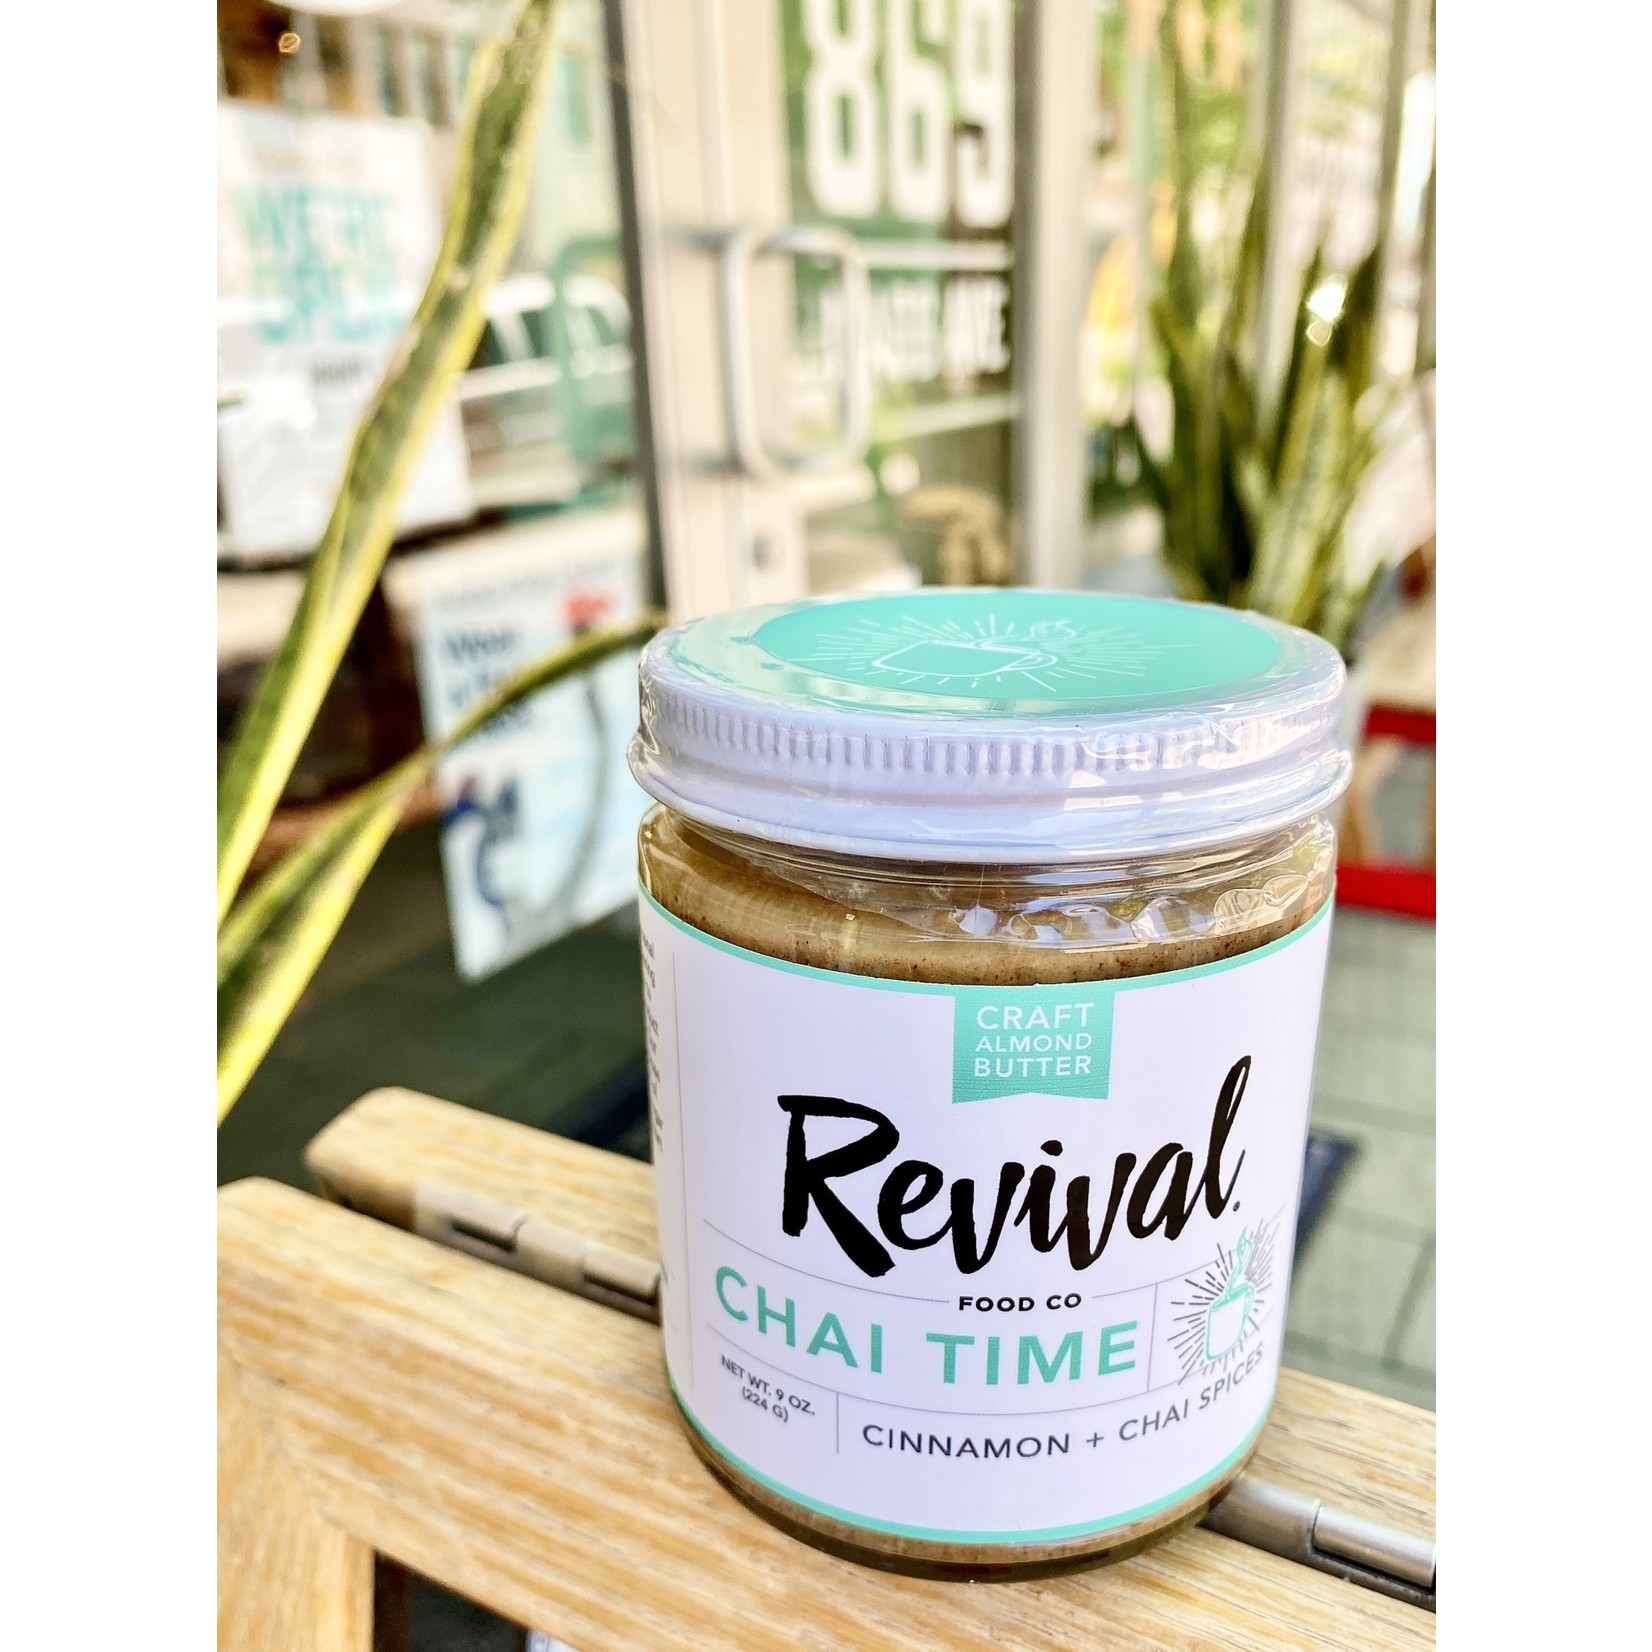 Revival Food Co. Almond Butter 9oz. Jars